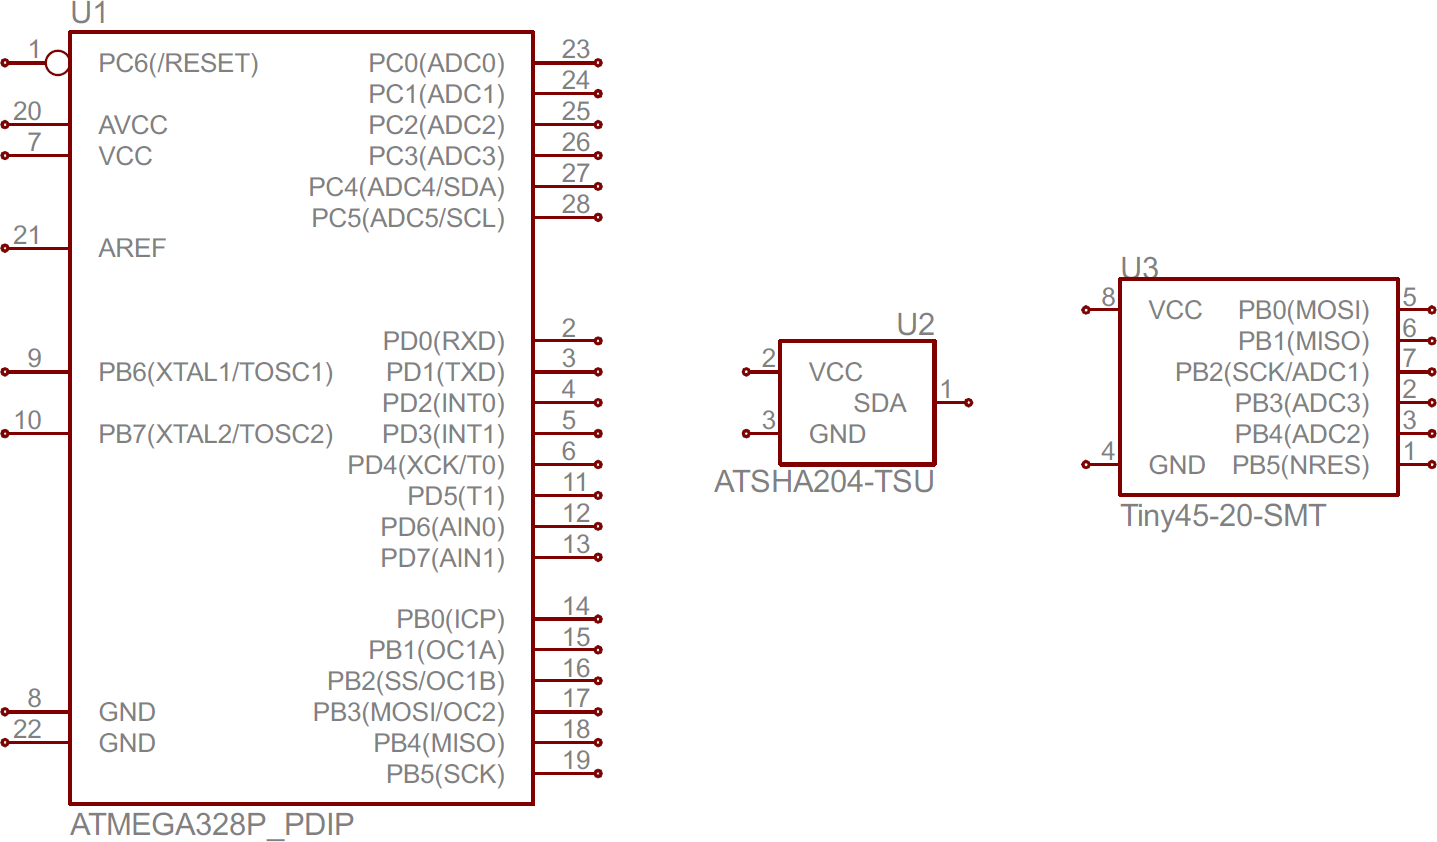 How To Read A Schematic Phone Wiring Diagram Atmega328 Atsha204 And Attiny45 Ic Symbols